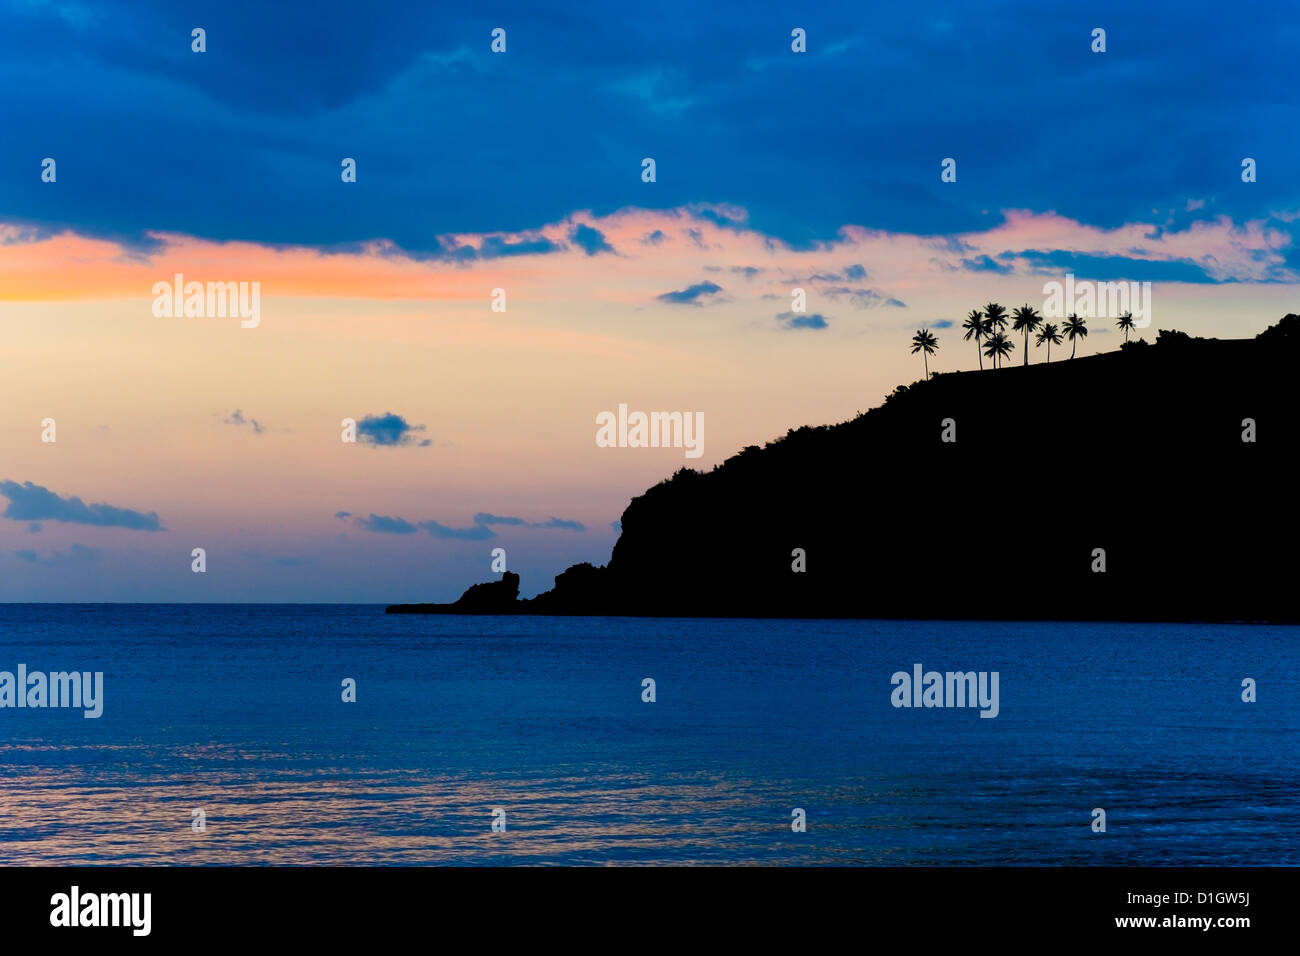 Silhouette of palm trees on a cliff at sunset, Nippah Beach, Lombok, Indonesia, Southeast Asia, Asia - Stock Image